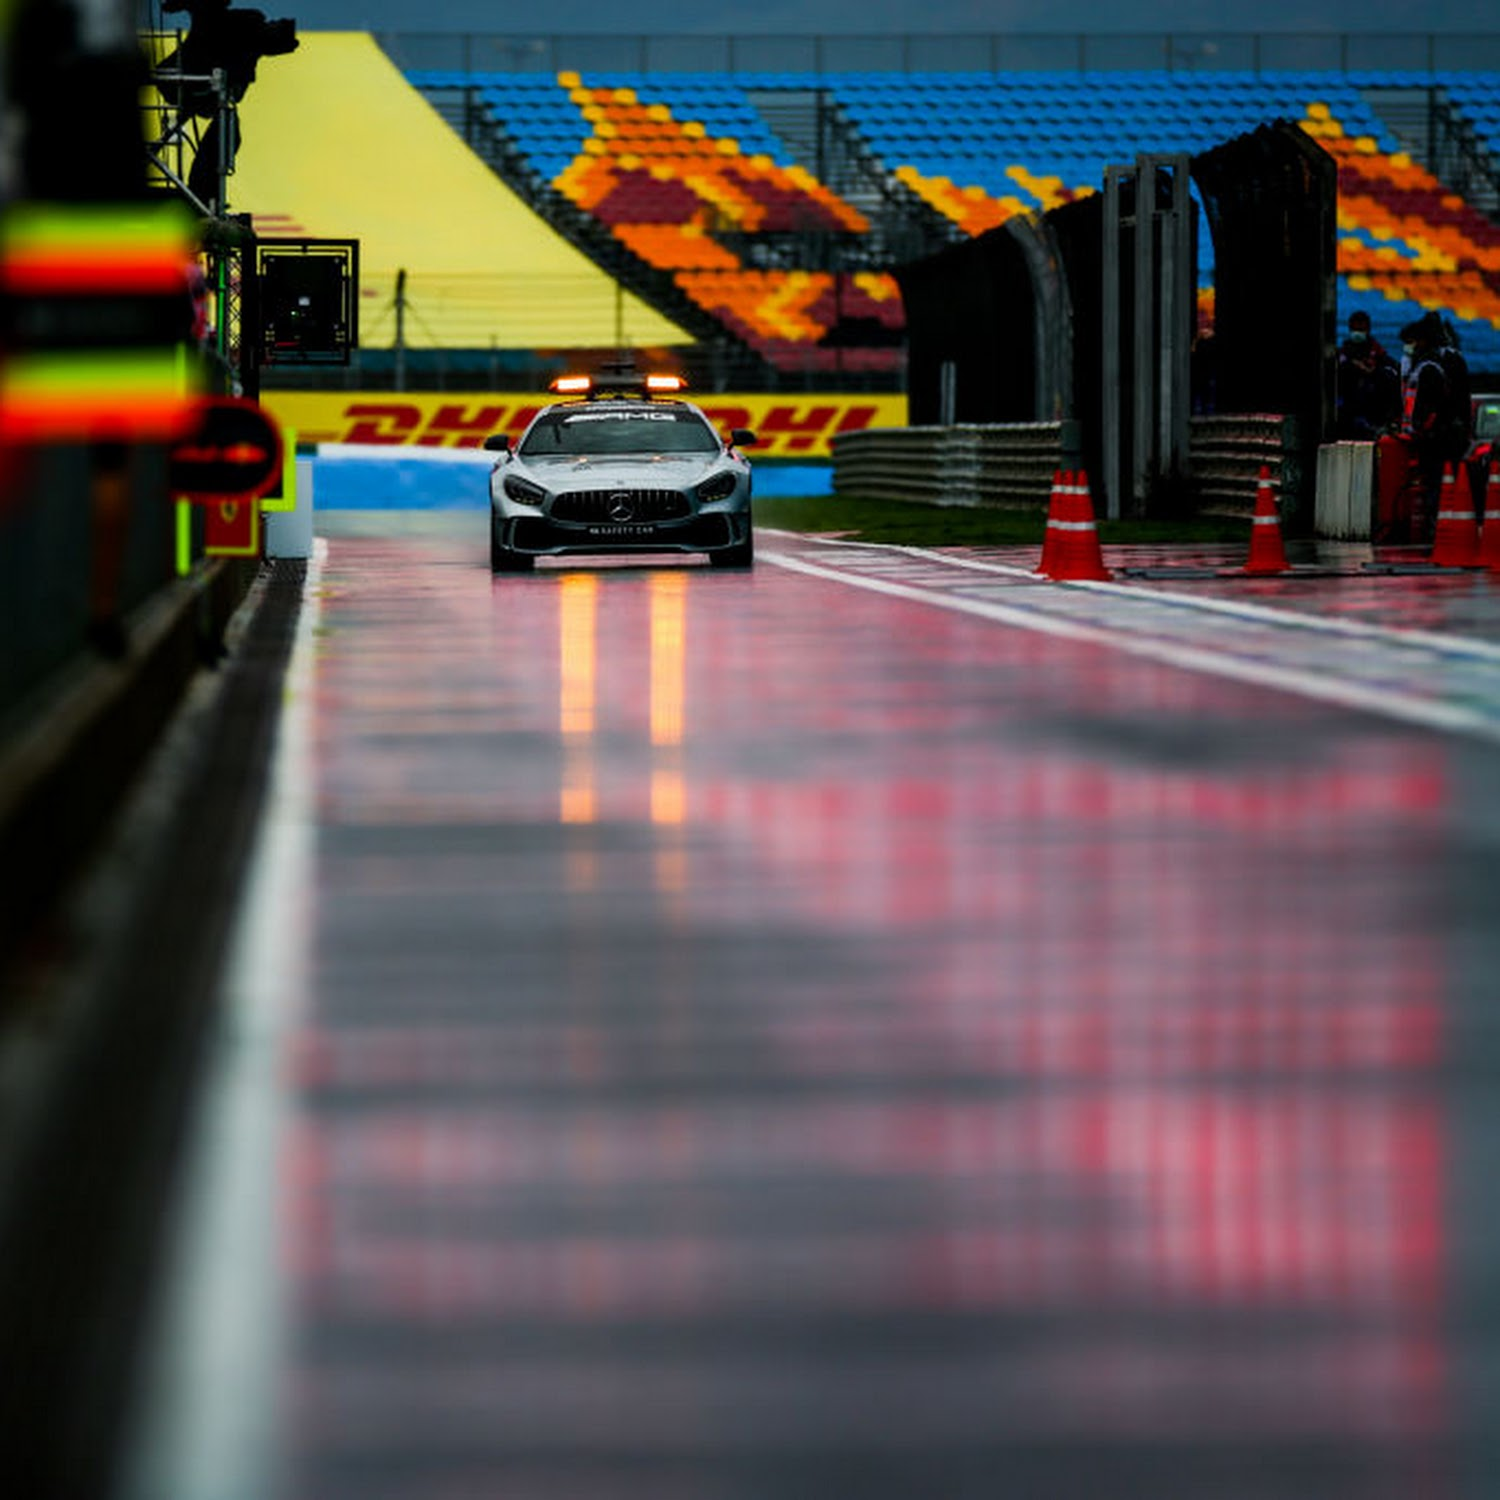 Aston Martin To Share F1 Safety Car Duties With Mercedes